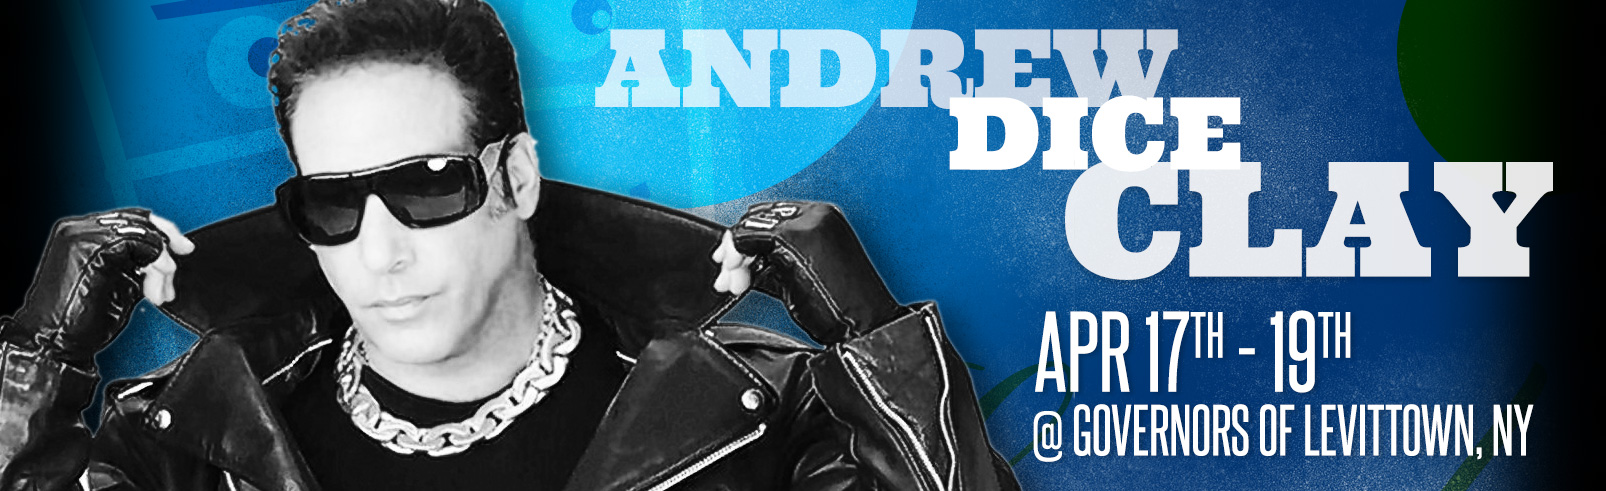 Andrew Dice Clay @ Governors of Levittown